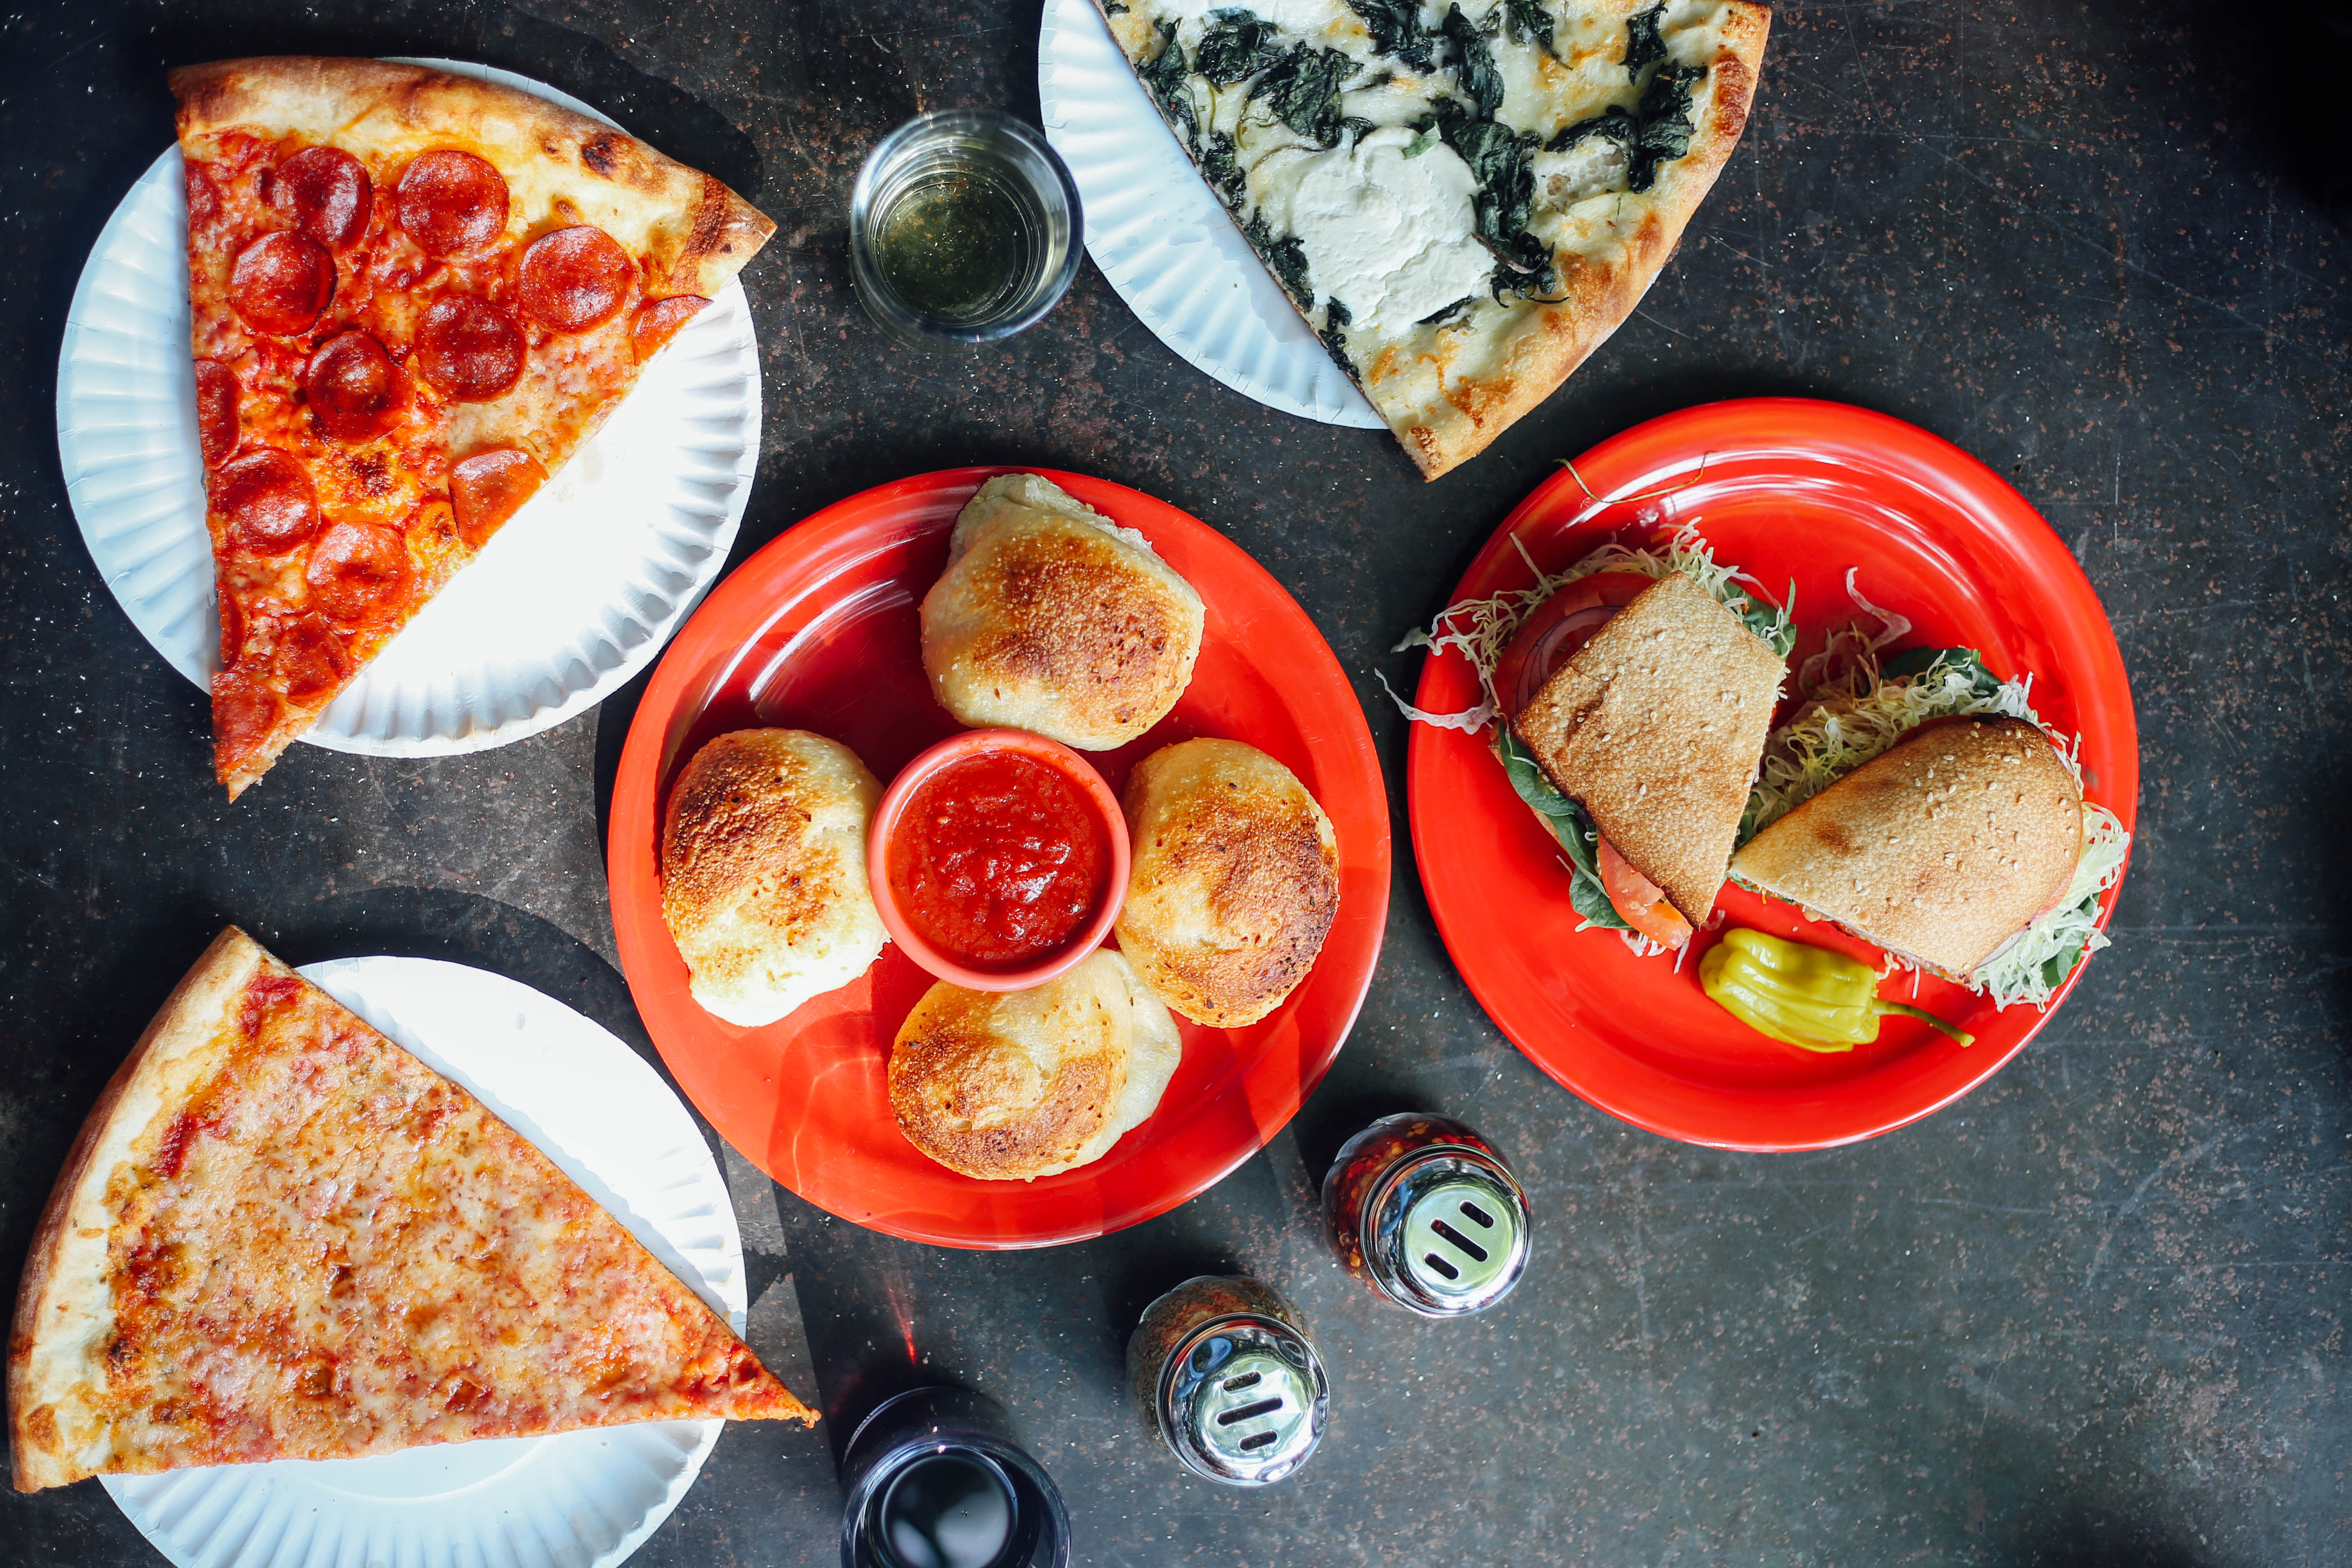 Pizza from Home Slice